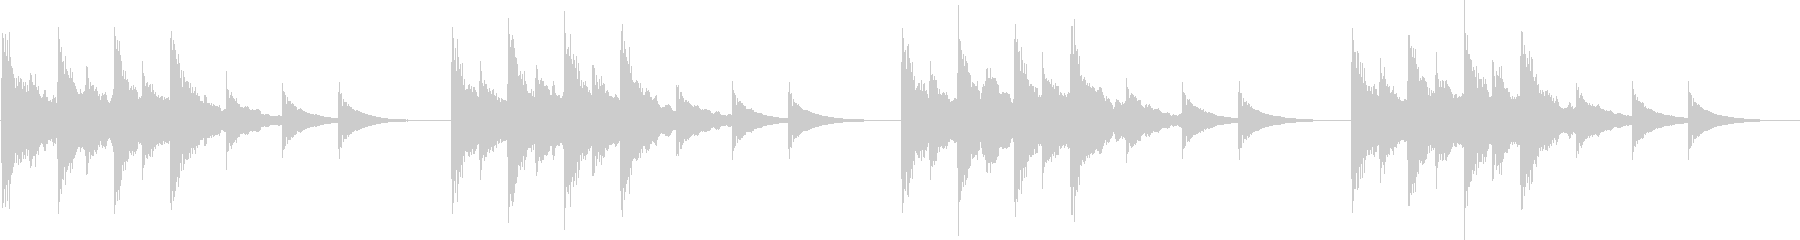 Jingle perfect for phone ringtones and alarms's unreproduced waveform